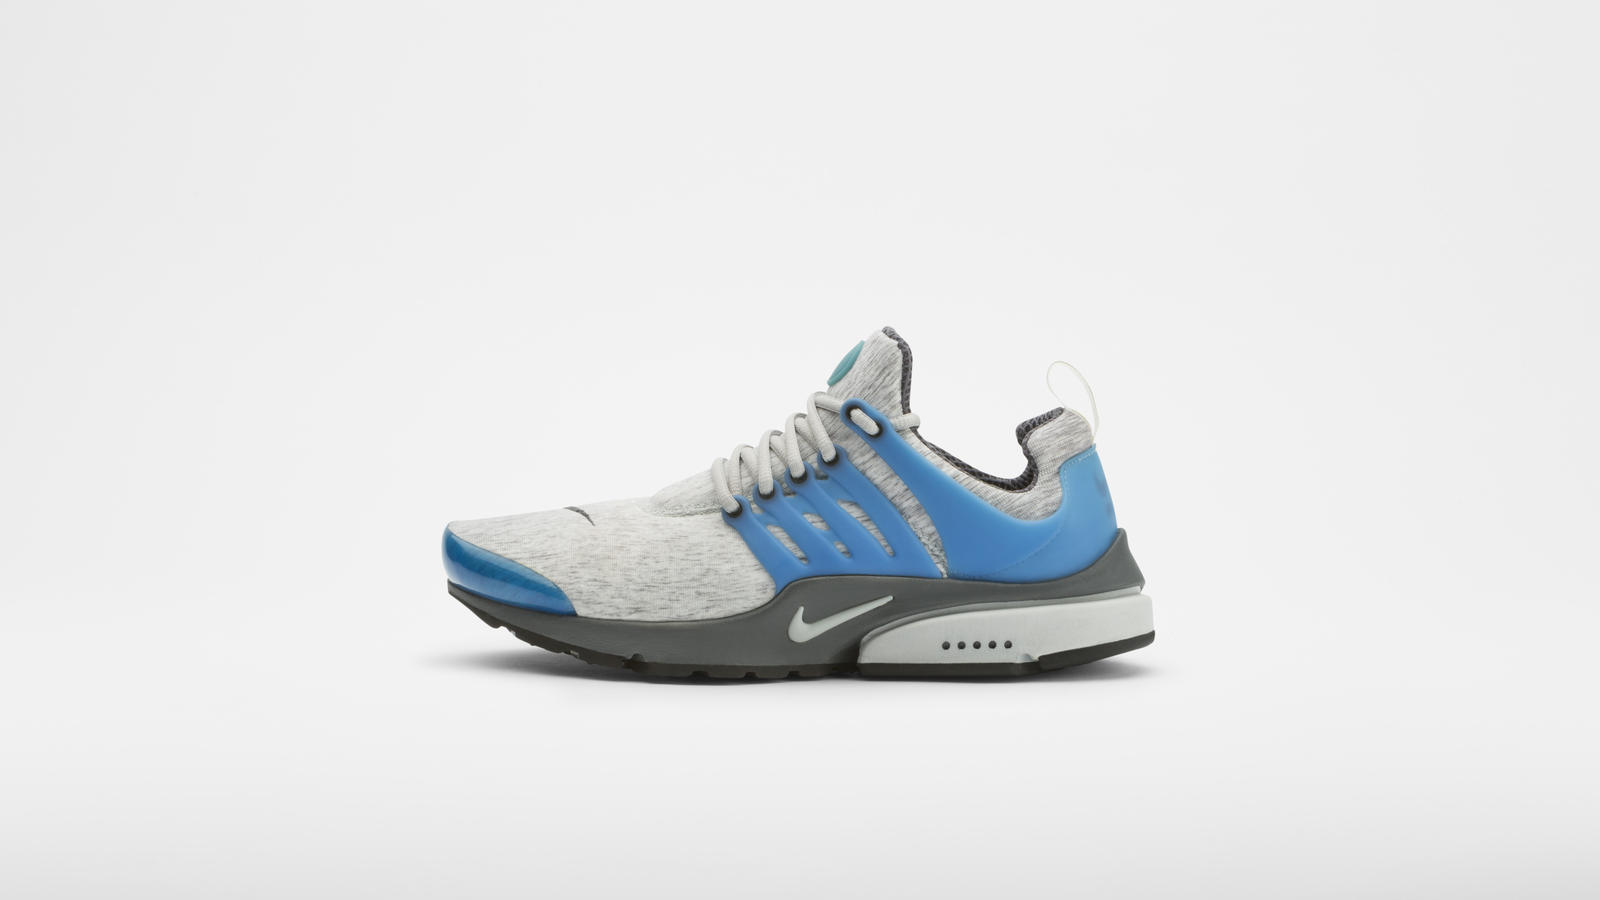 Nike Magic Behind The Air Presto News rCxBoedW